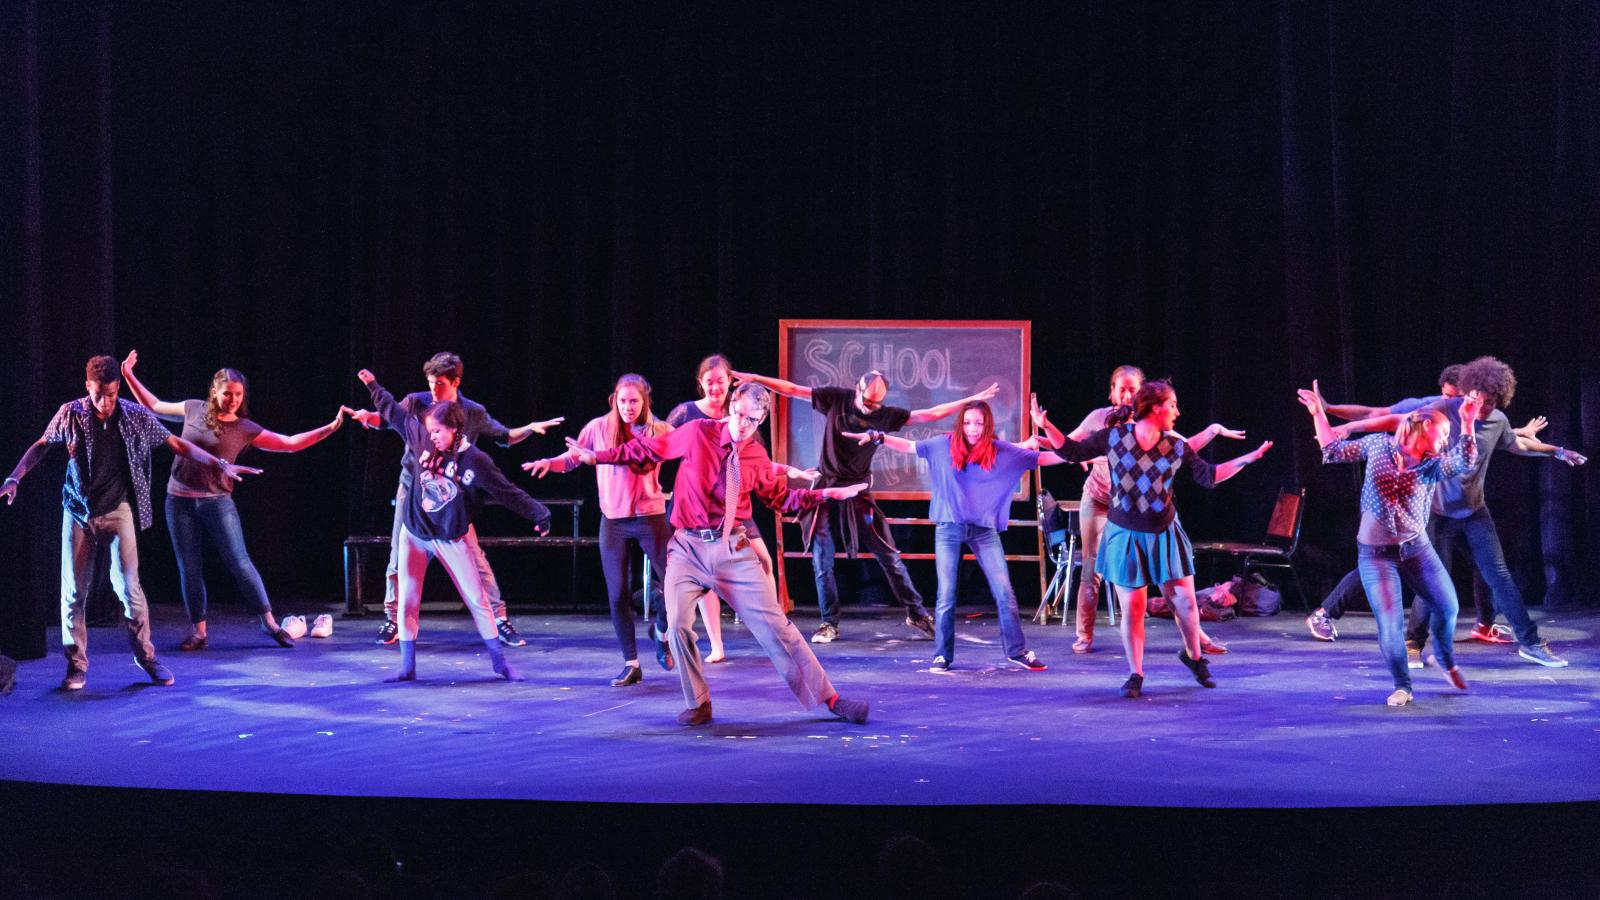 """""""School of Rhythm"""" presented by Elephant Games Productions at Rarig Center Proscenium"""